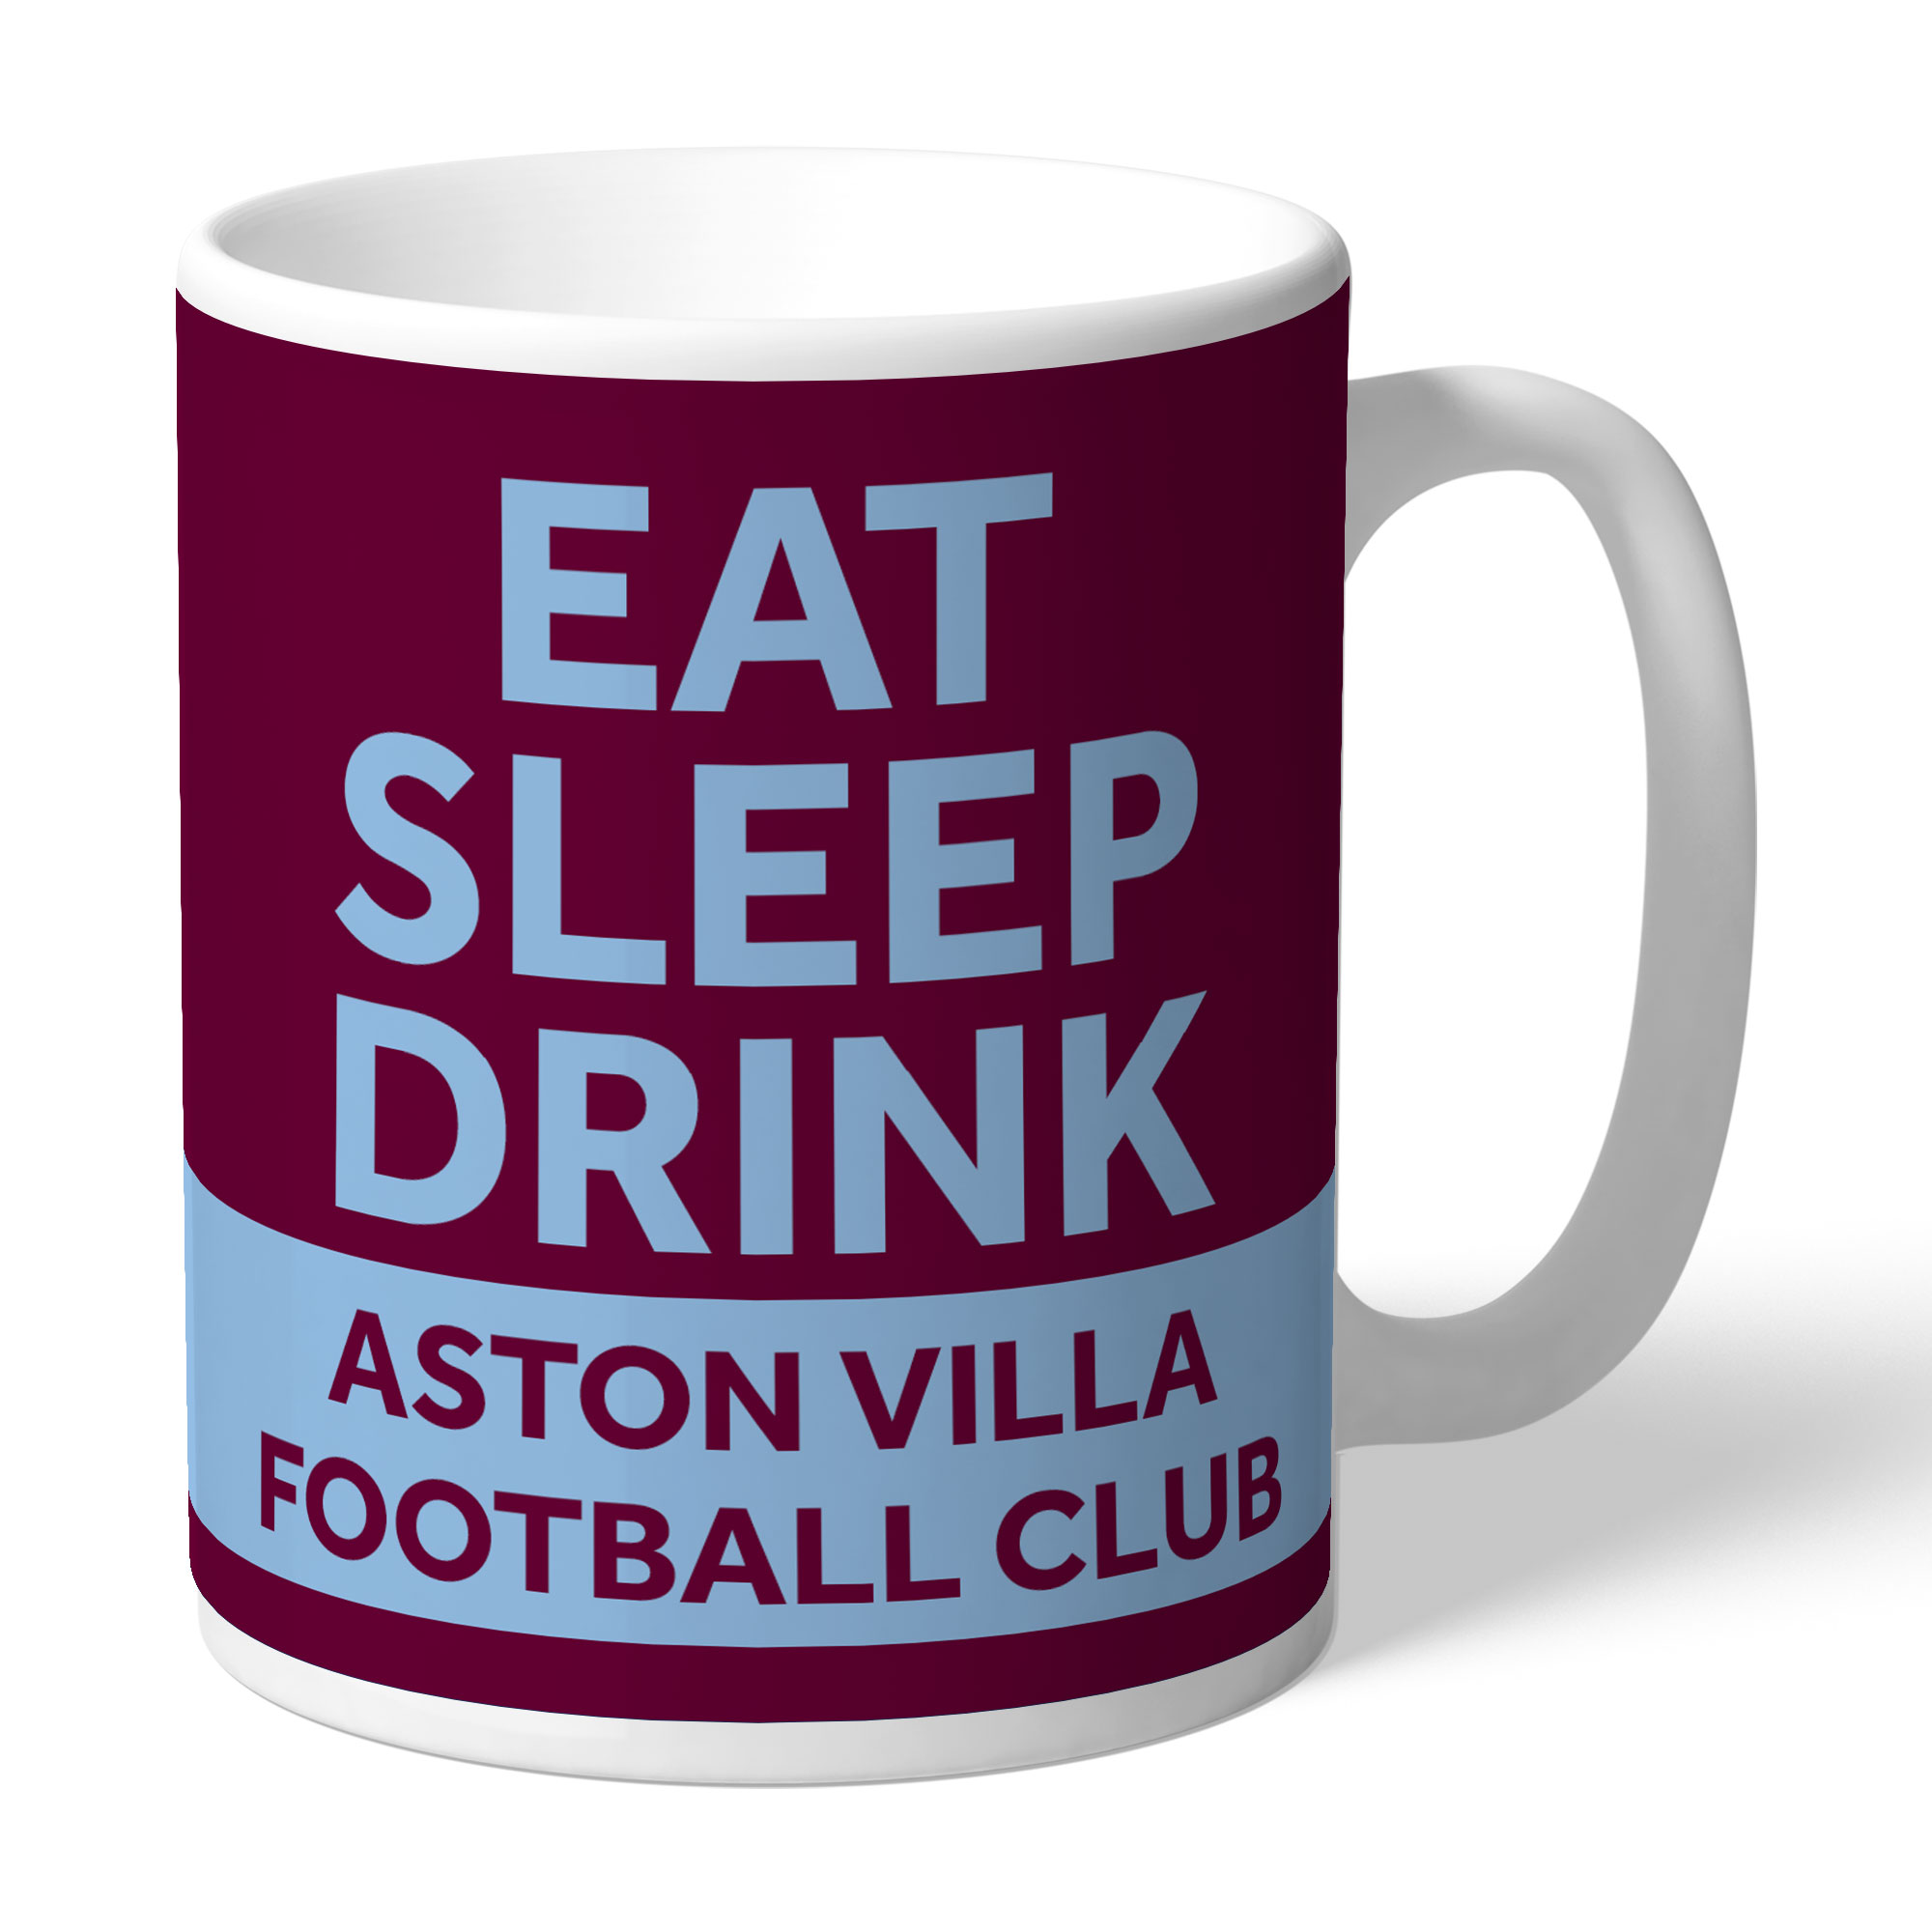 Aston Villa FC Eat Sleep Drink Mug